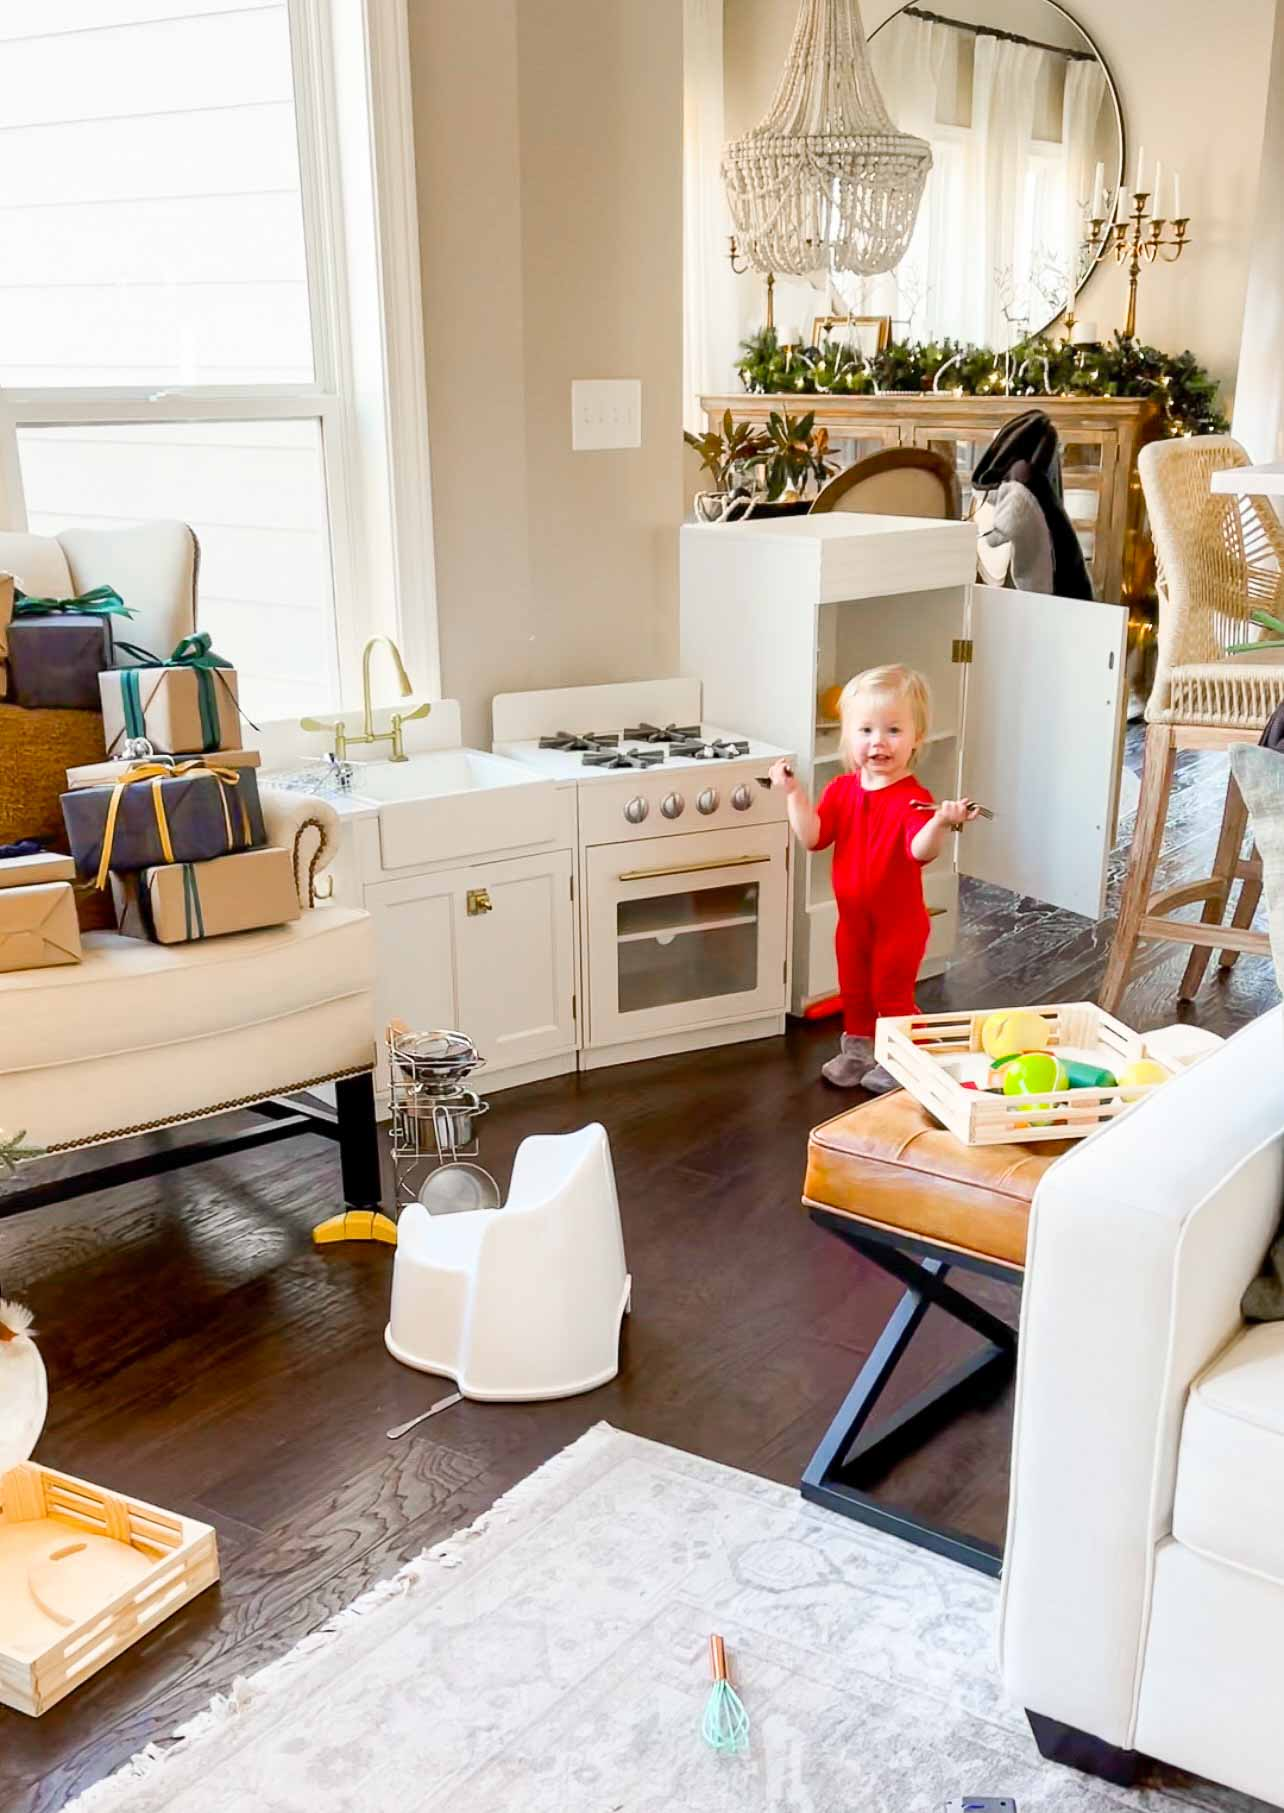 pb chelsea kitchen for playroom